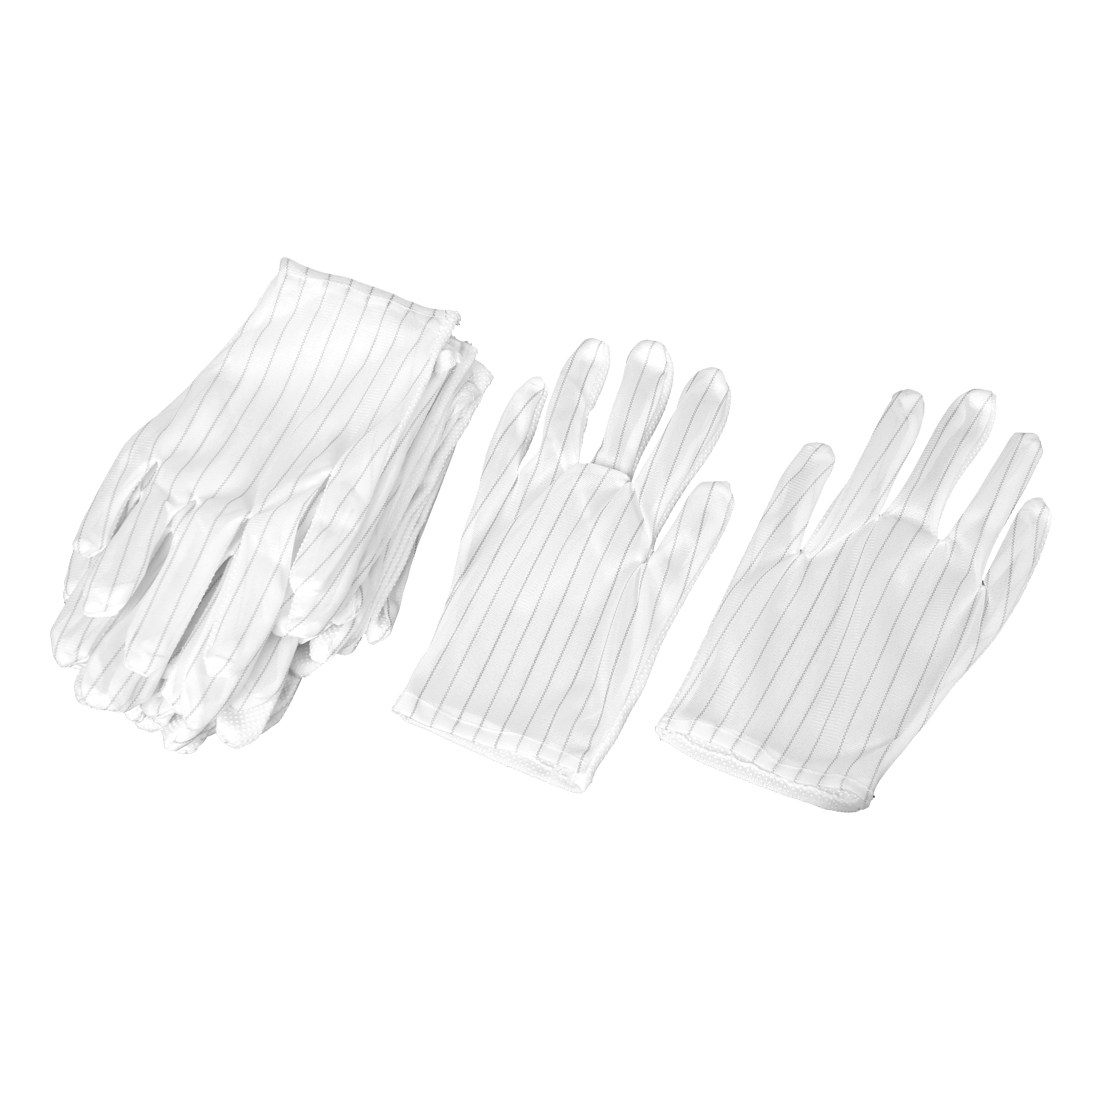 8 Pairs White Stripes Printed Dotted Anti-static Working Gloves for Workers